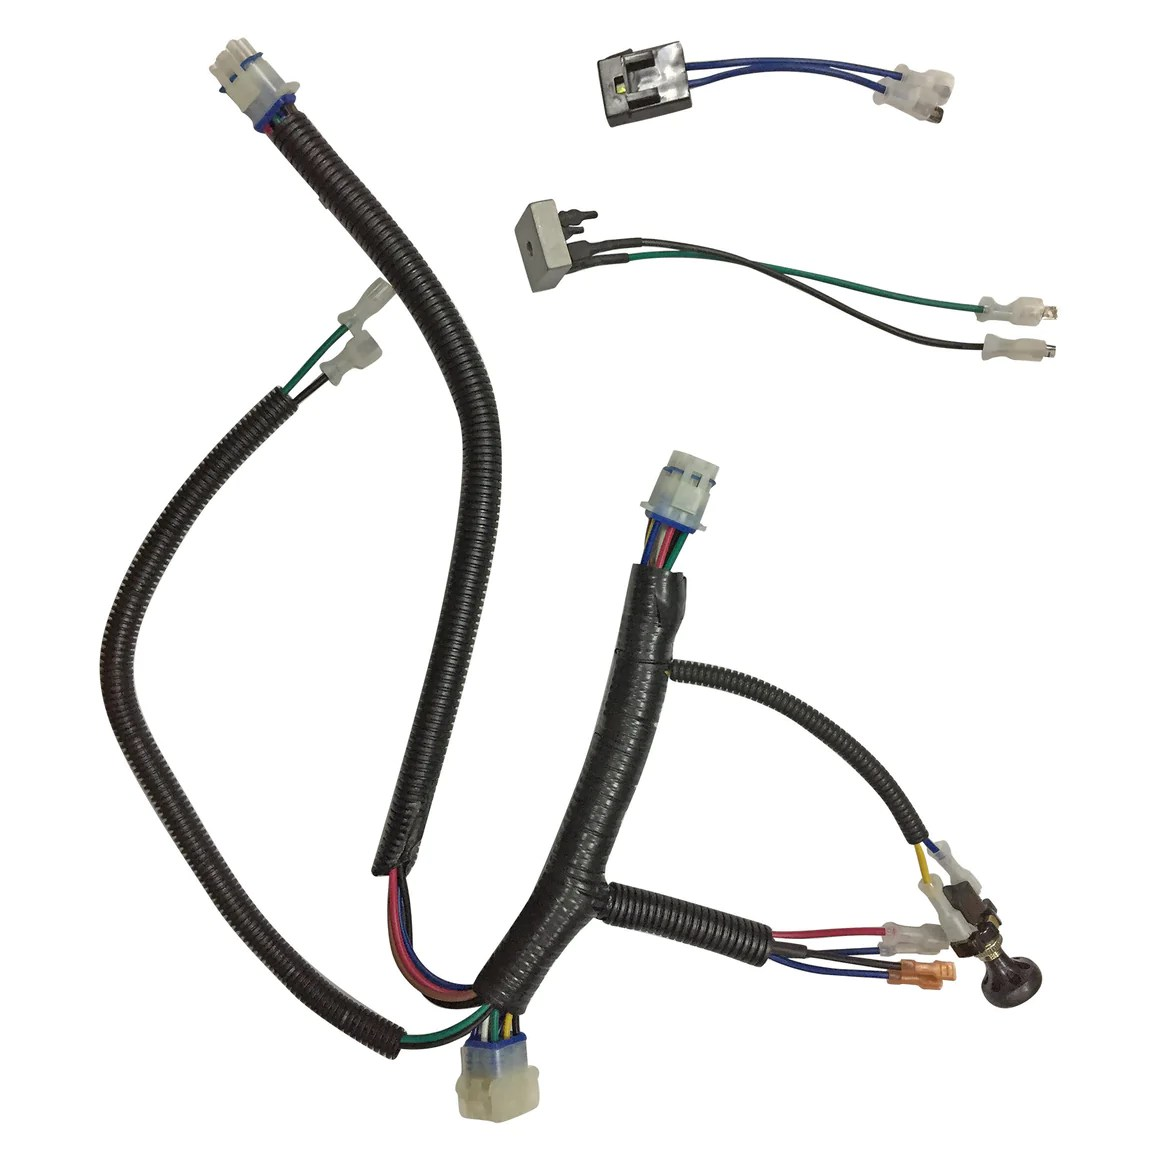 small resolution of route 66 gas harness for club car precedent gas 2004 up